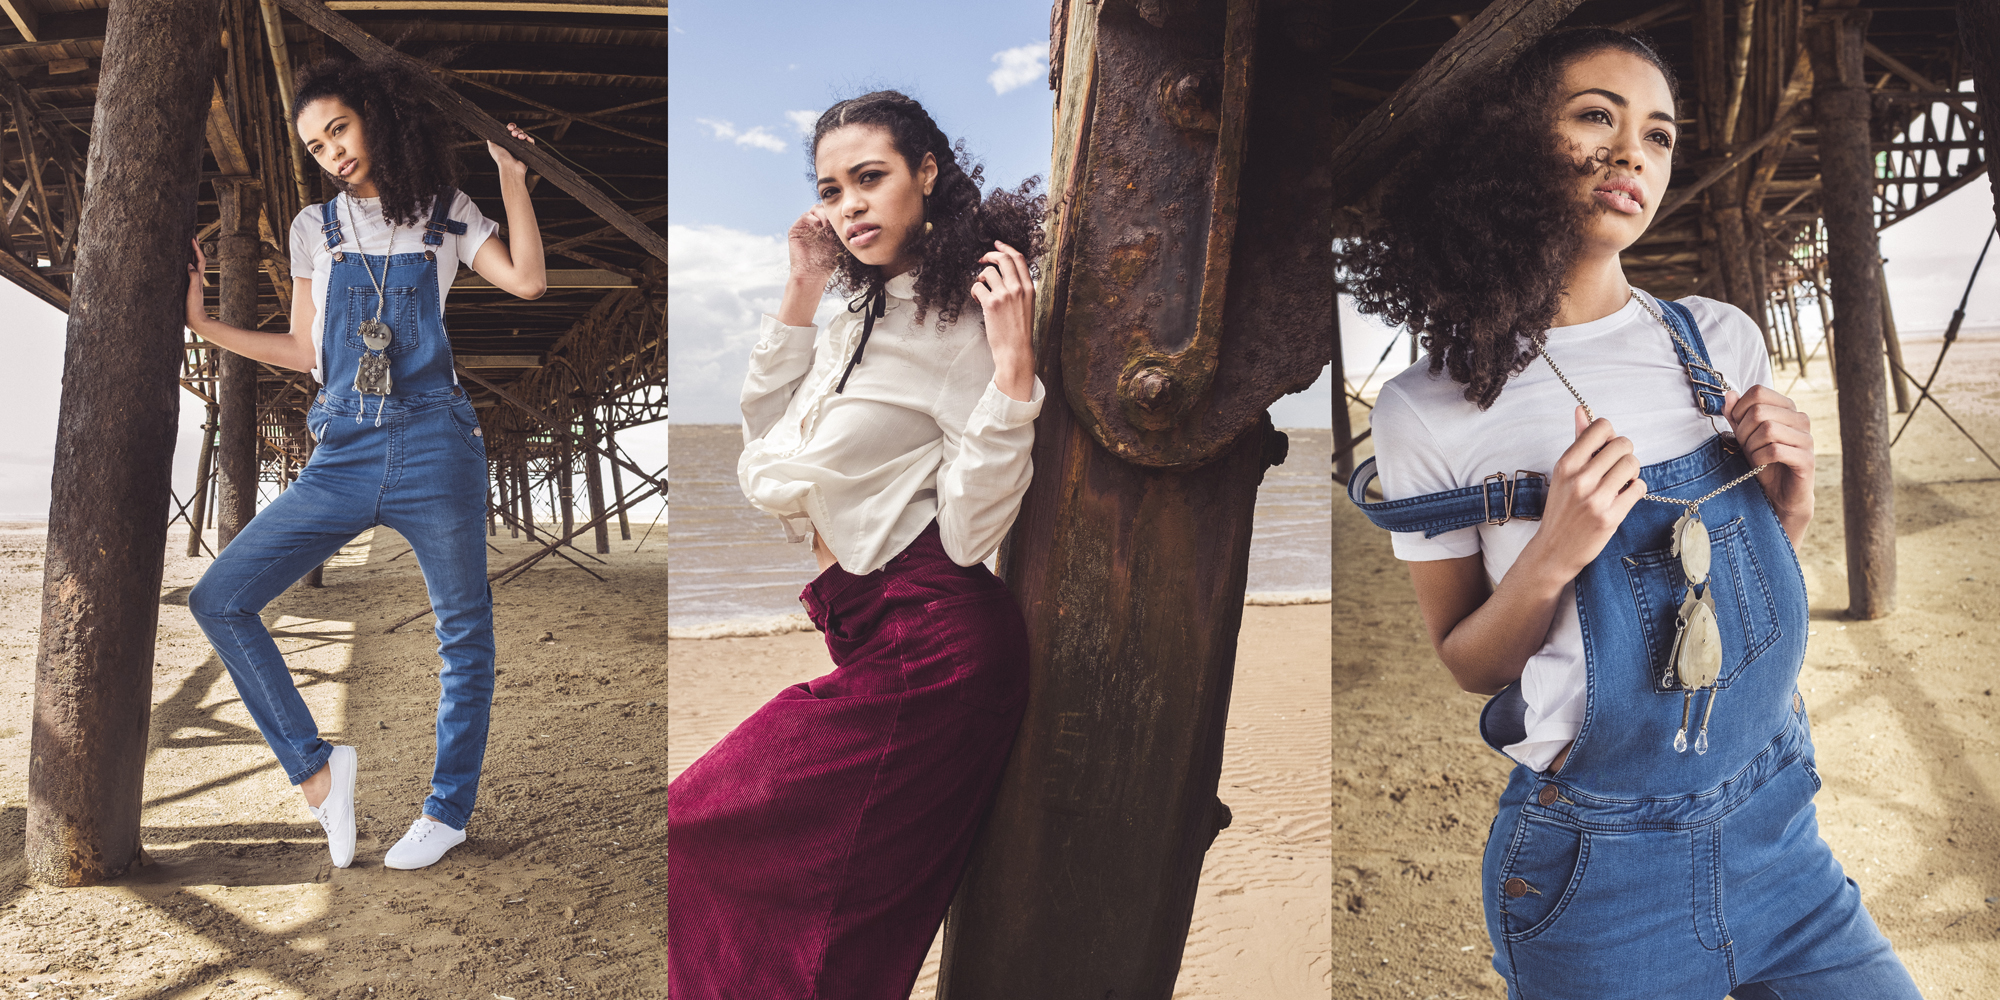 look book creative model shots by the pier